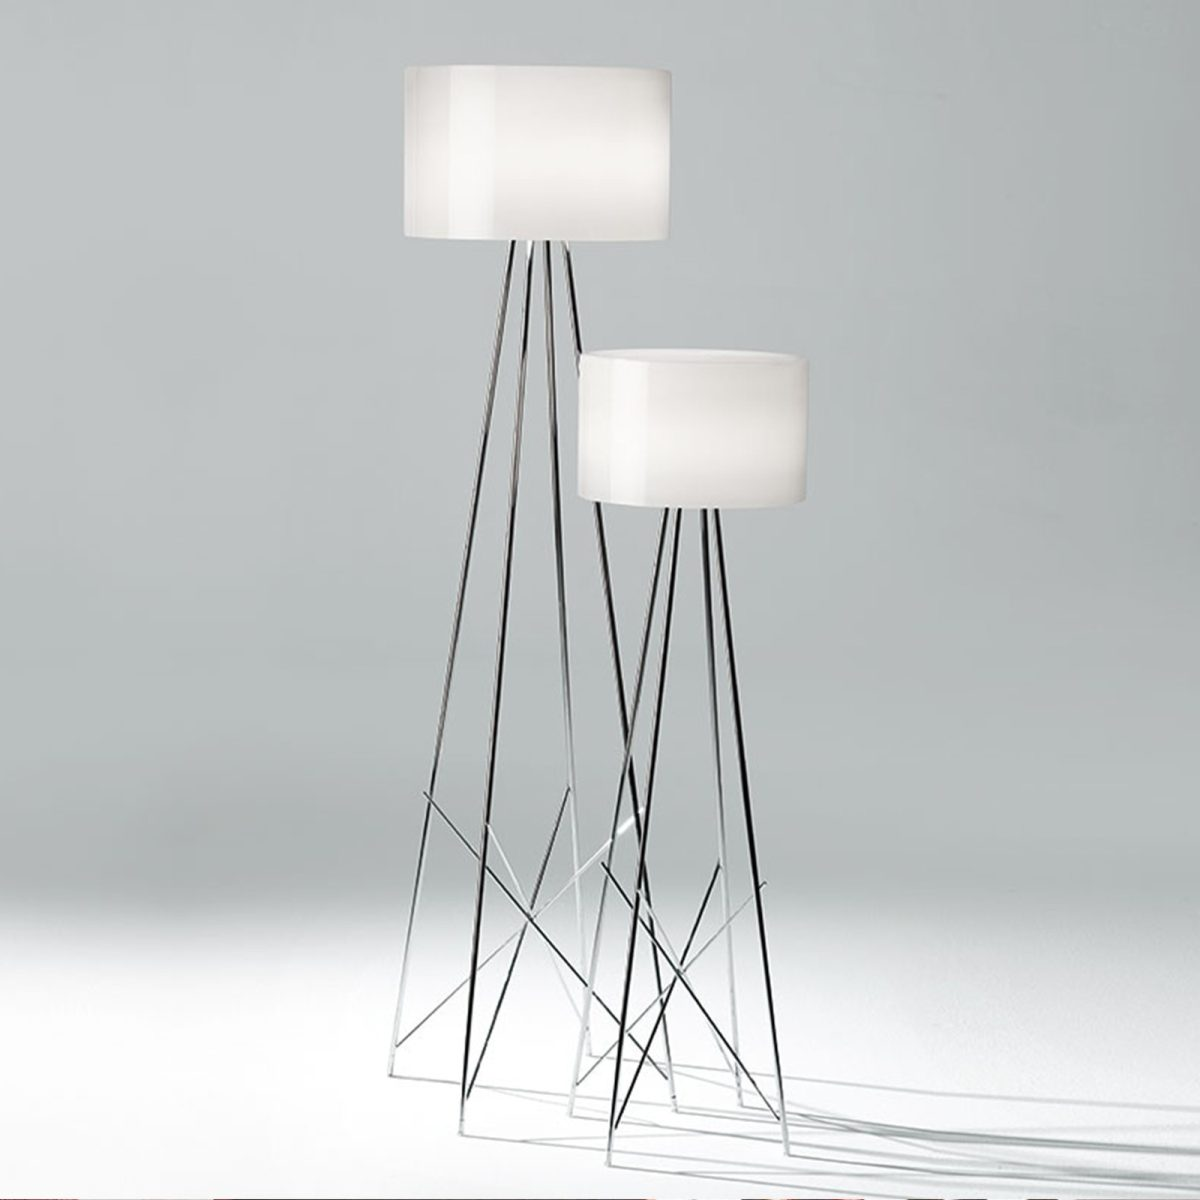 ray-f1-f2-floor-lamp-flosxy